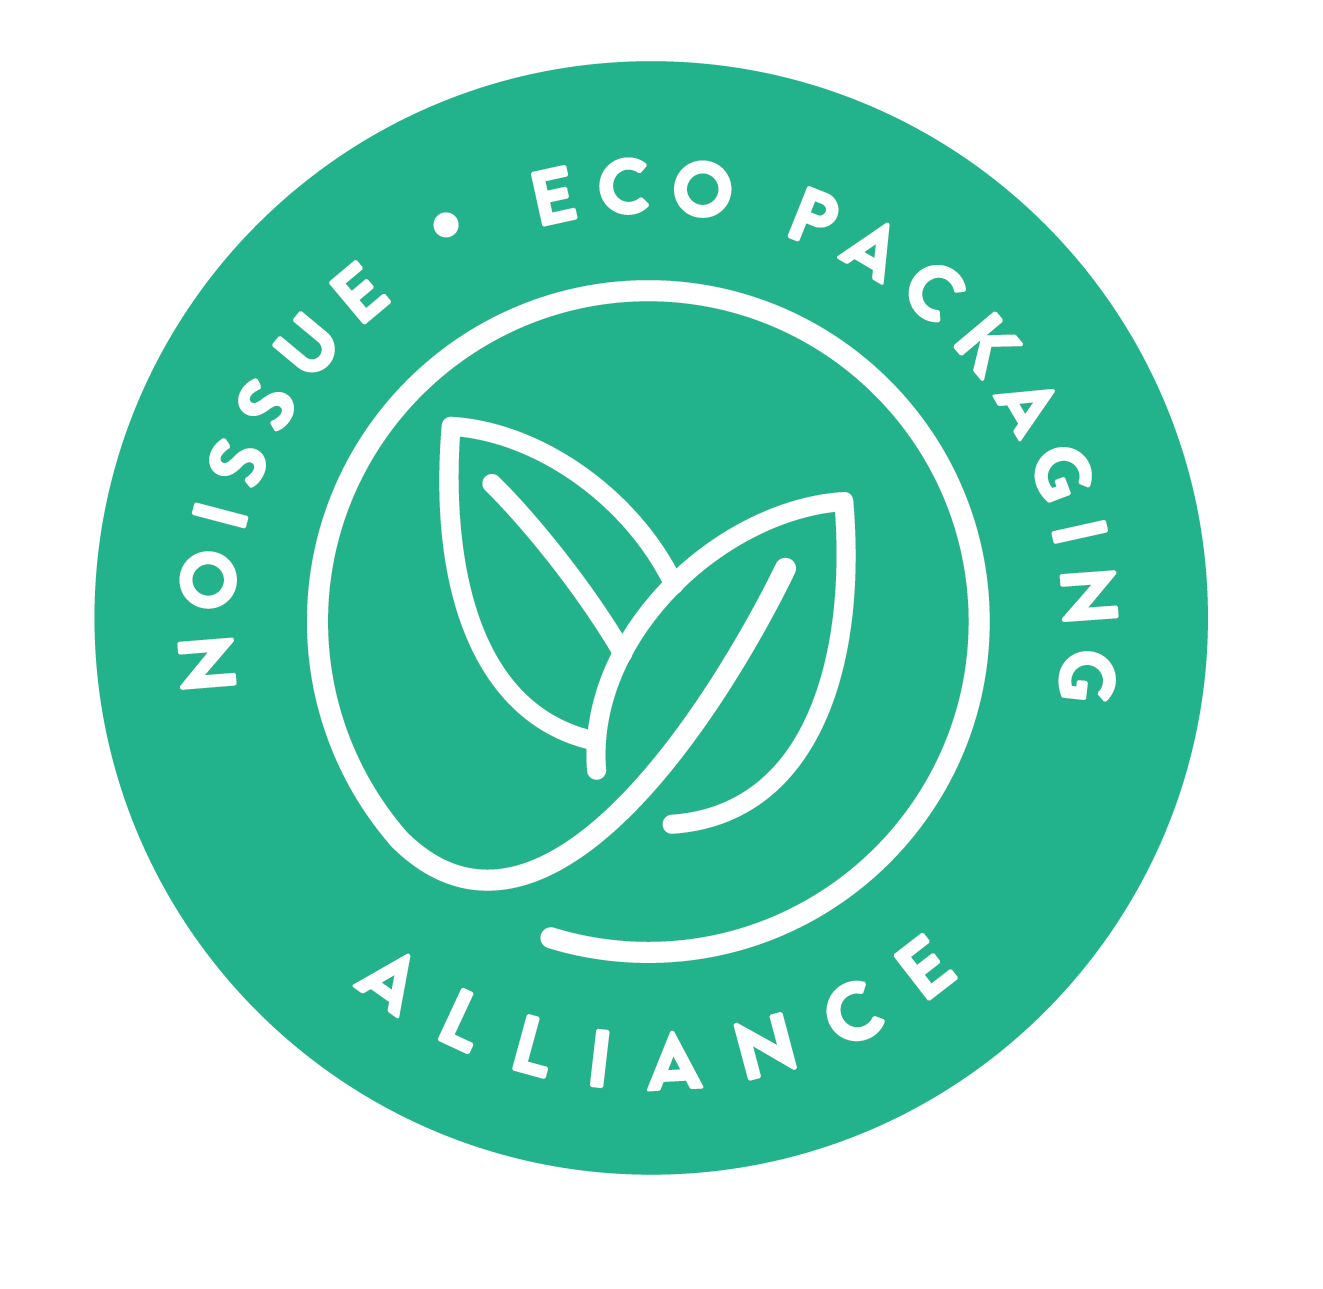 noissue-eco-packaging-alliance-logo